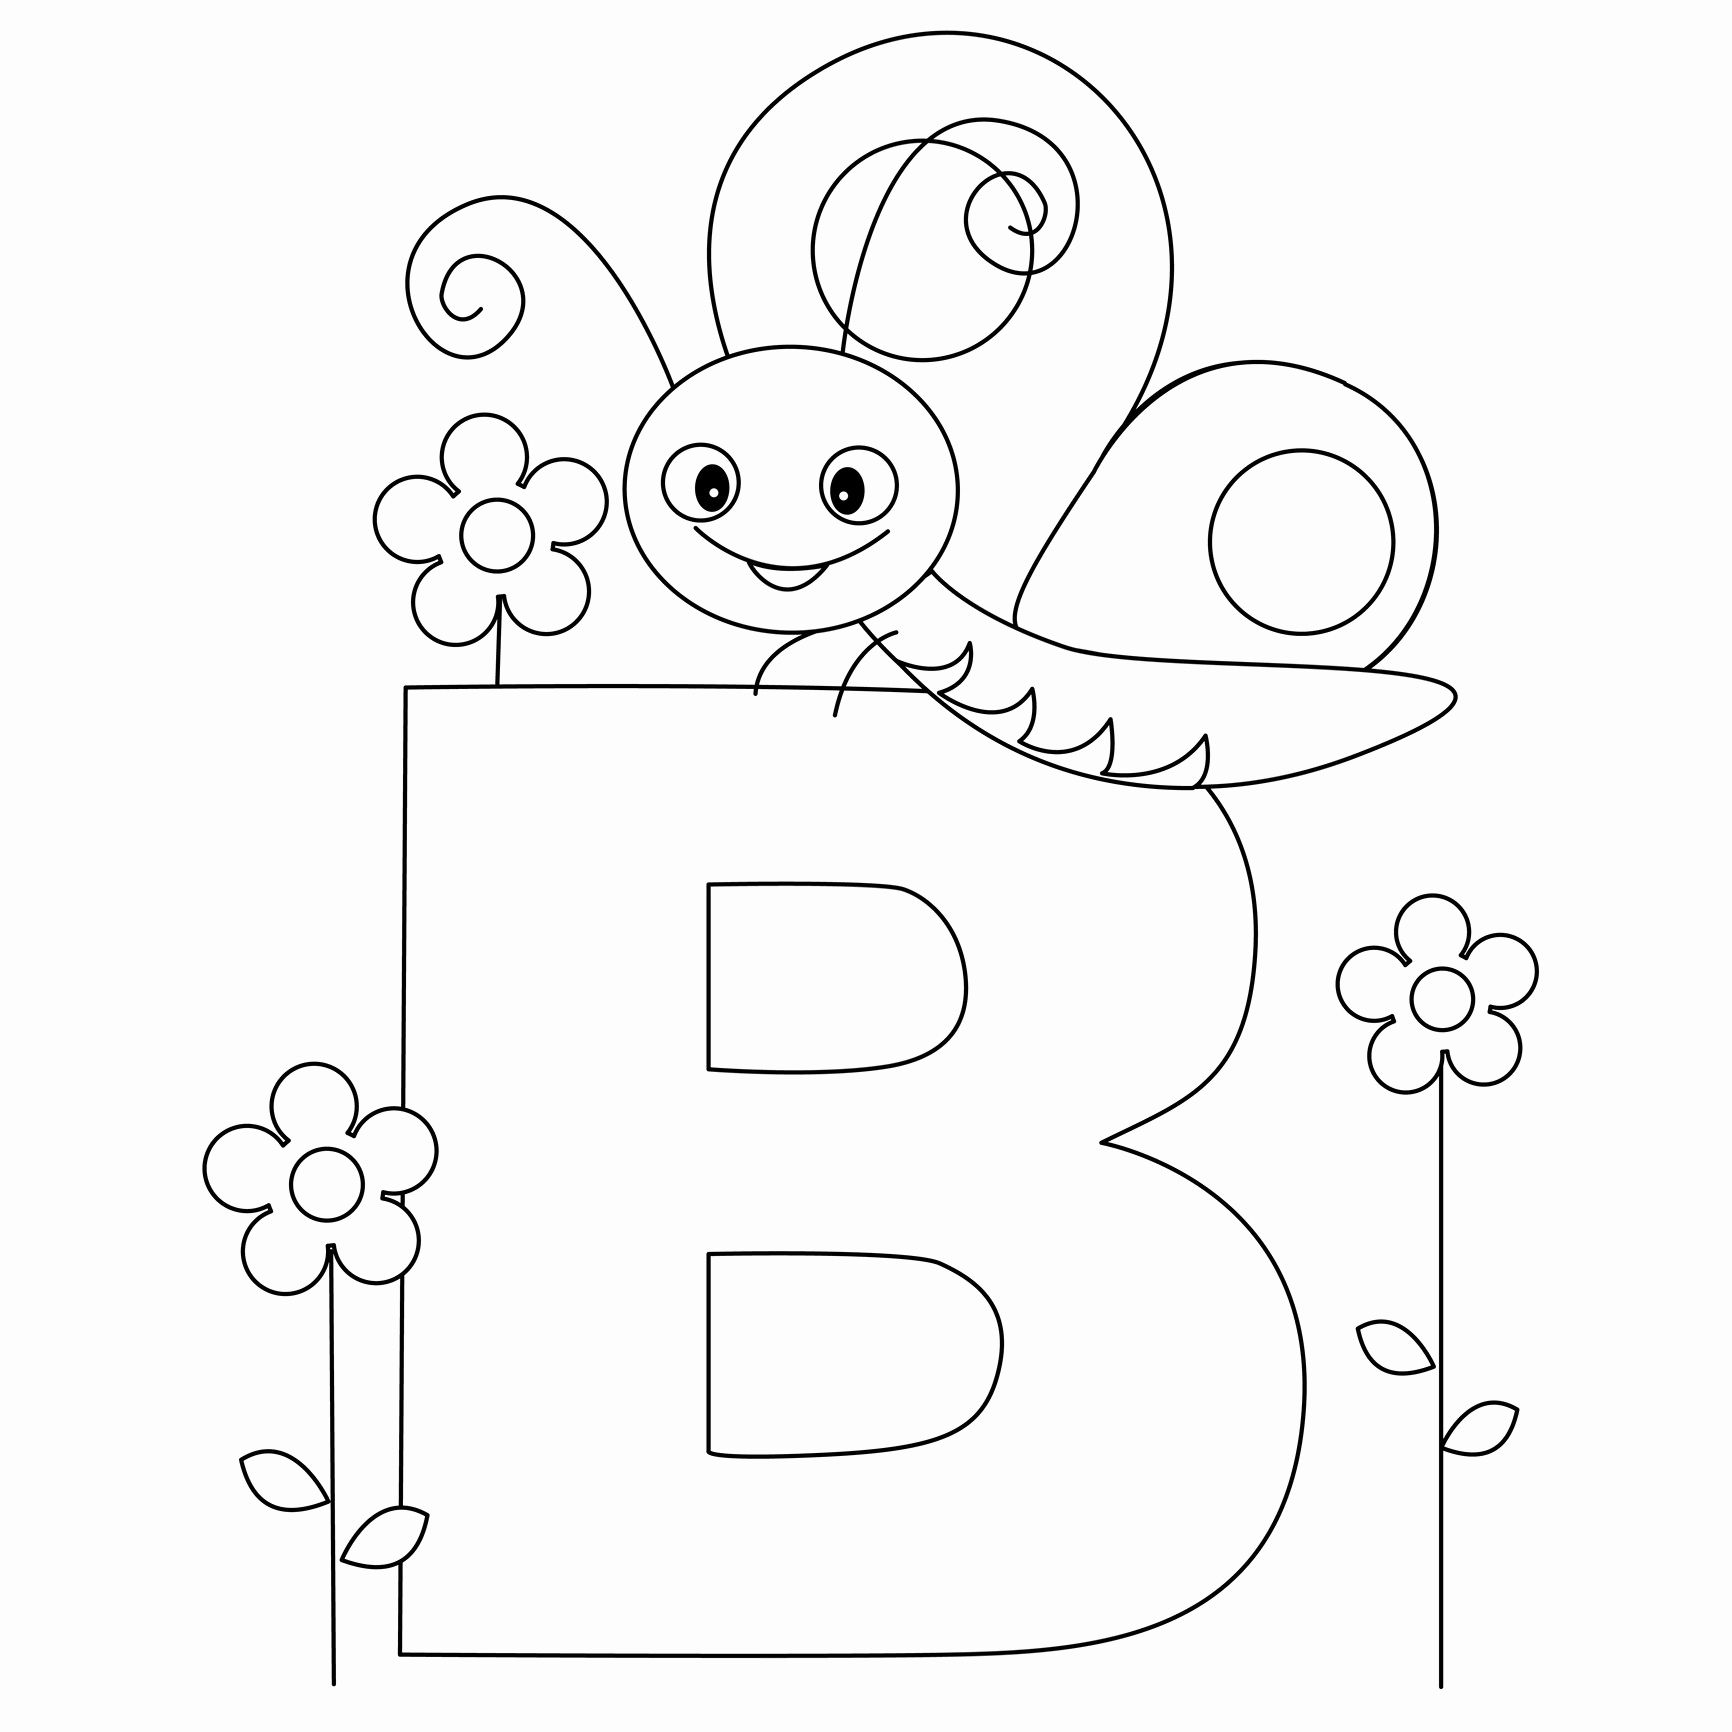 Alphabet Coloring Booke Pdf Download Pages For Preschoolers intended for Alphabet Colouring Worksheets For Preschoolers